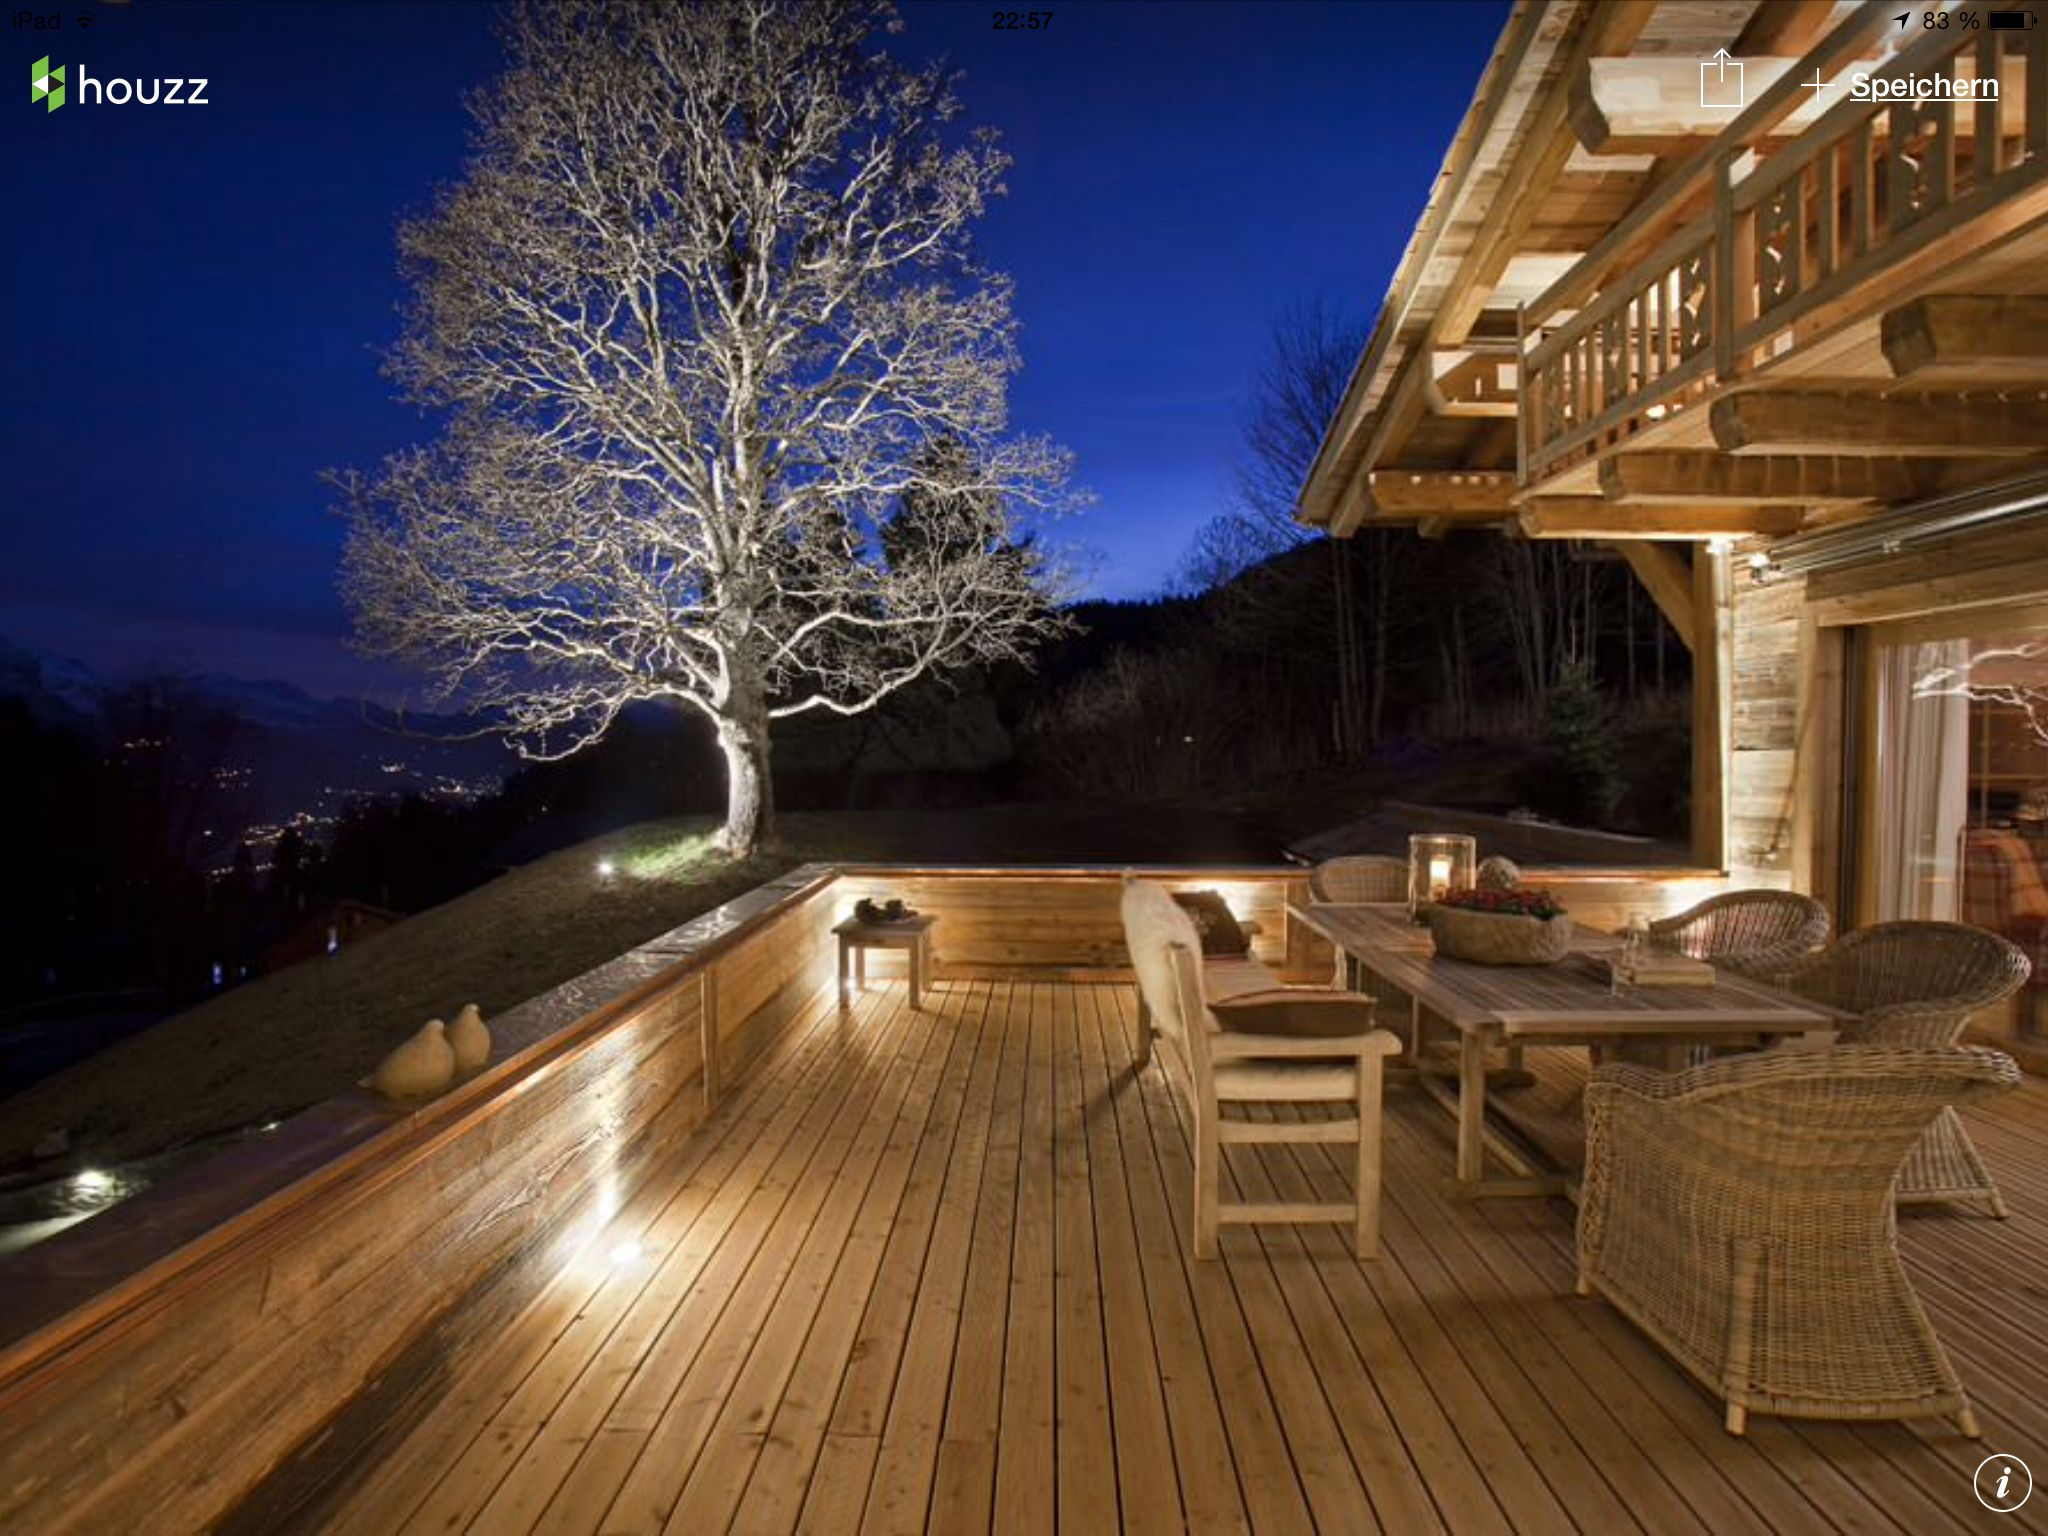 Eclectic Ski Chalet Making The Most Of Indoor/outdoor Living With A Large  Porch Off The Livingroom. Solar Spotlight On The Tree Gives It The Illusion  Of ...